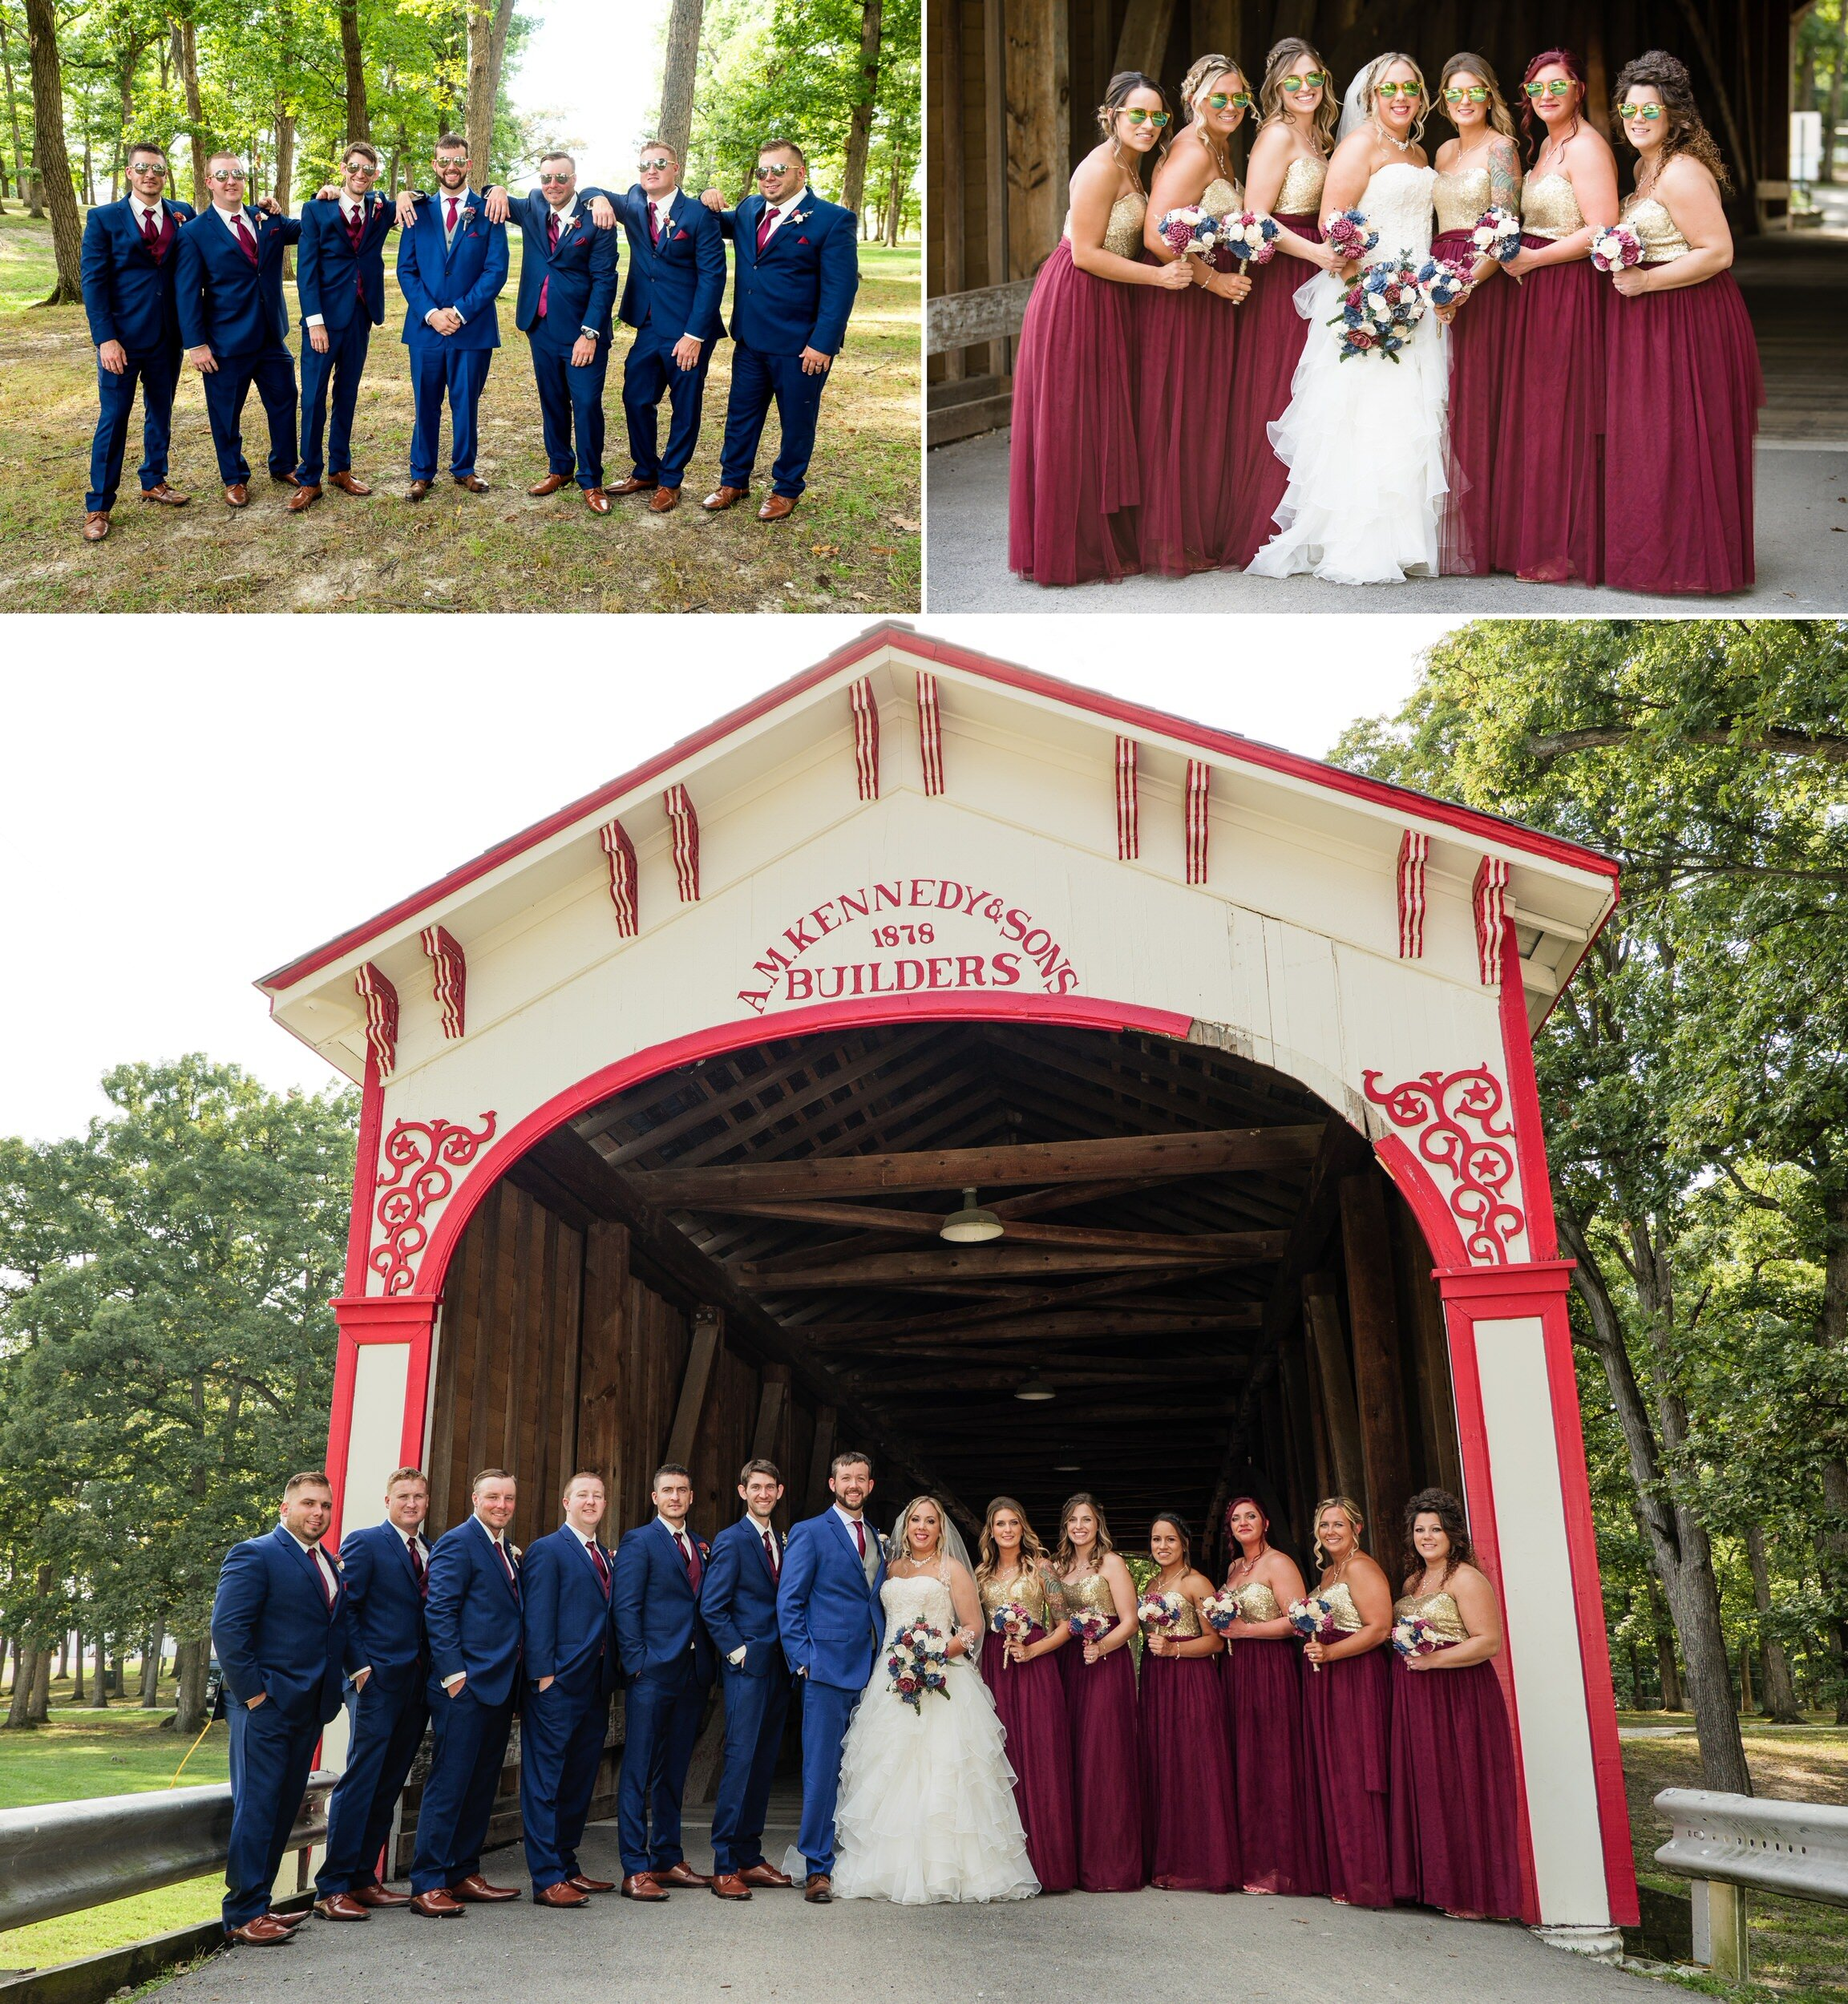 Wedding party group photos at the old covered bridge at Lake County Fairgrounds.